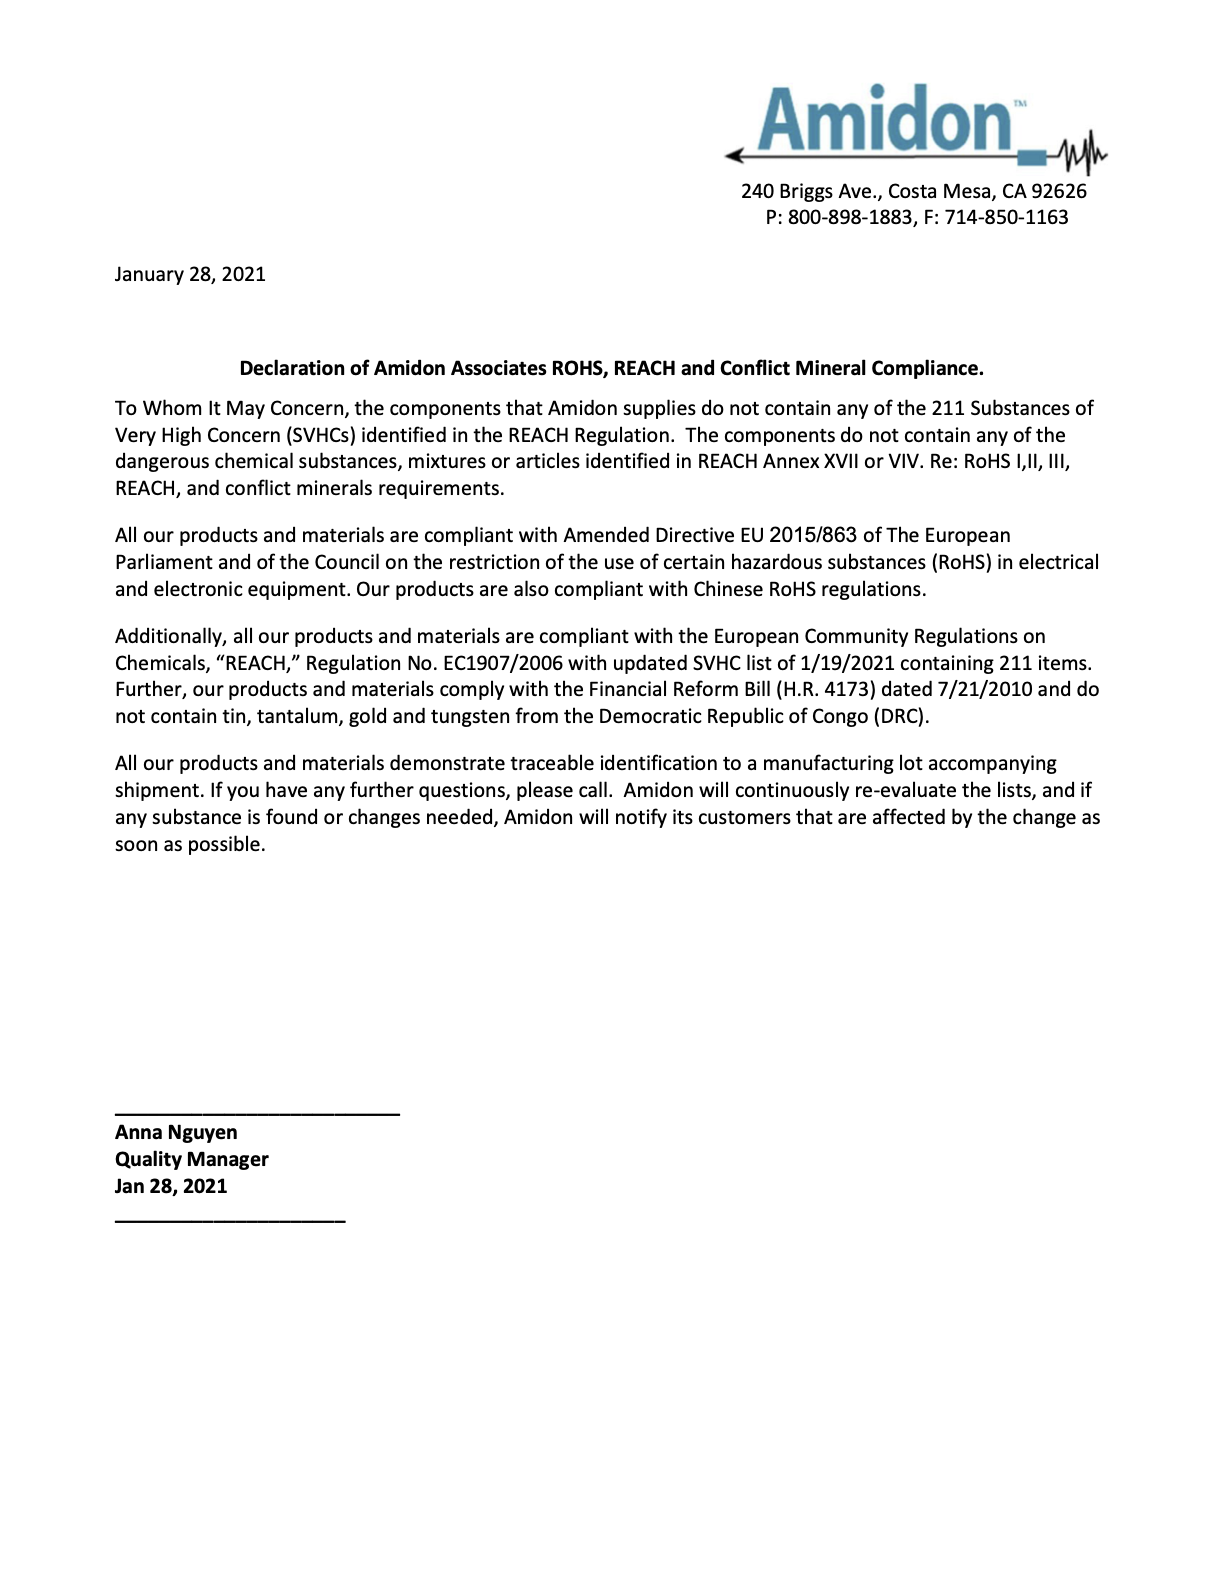 amidon-reach-rohs-and-conflict-mineral-statement-2021-01-28.png